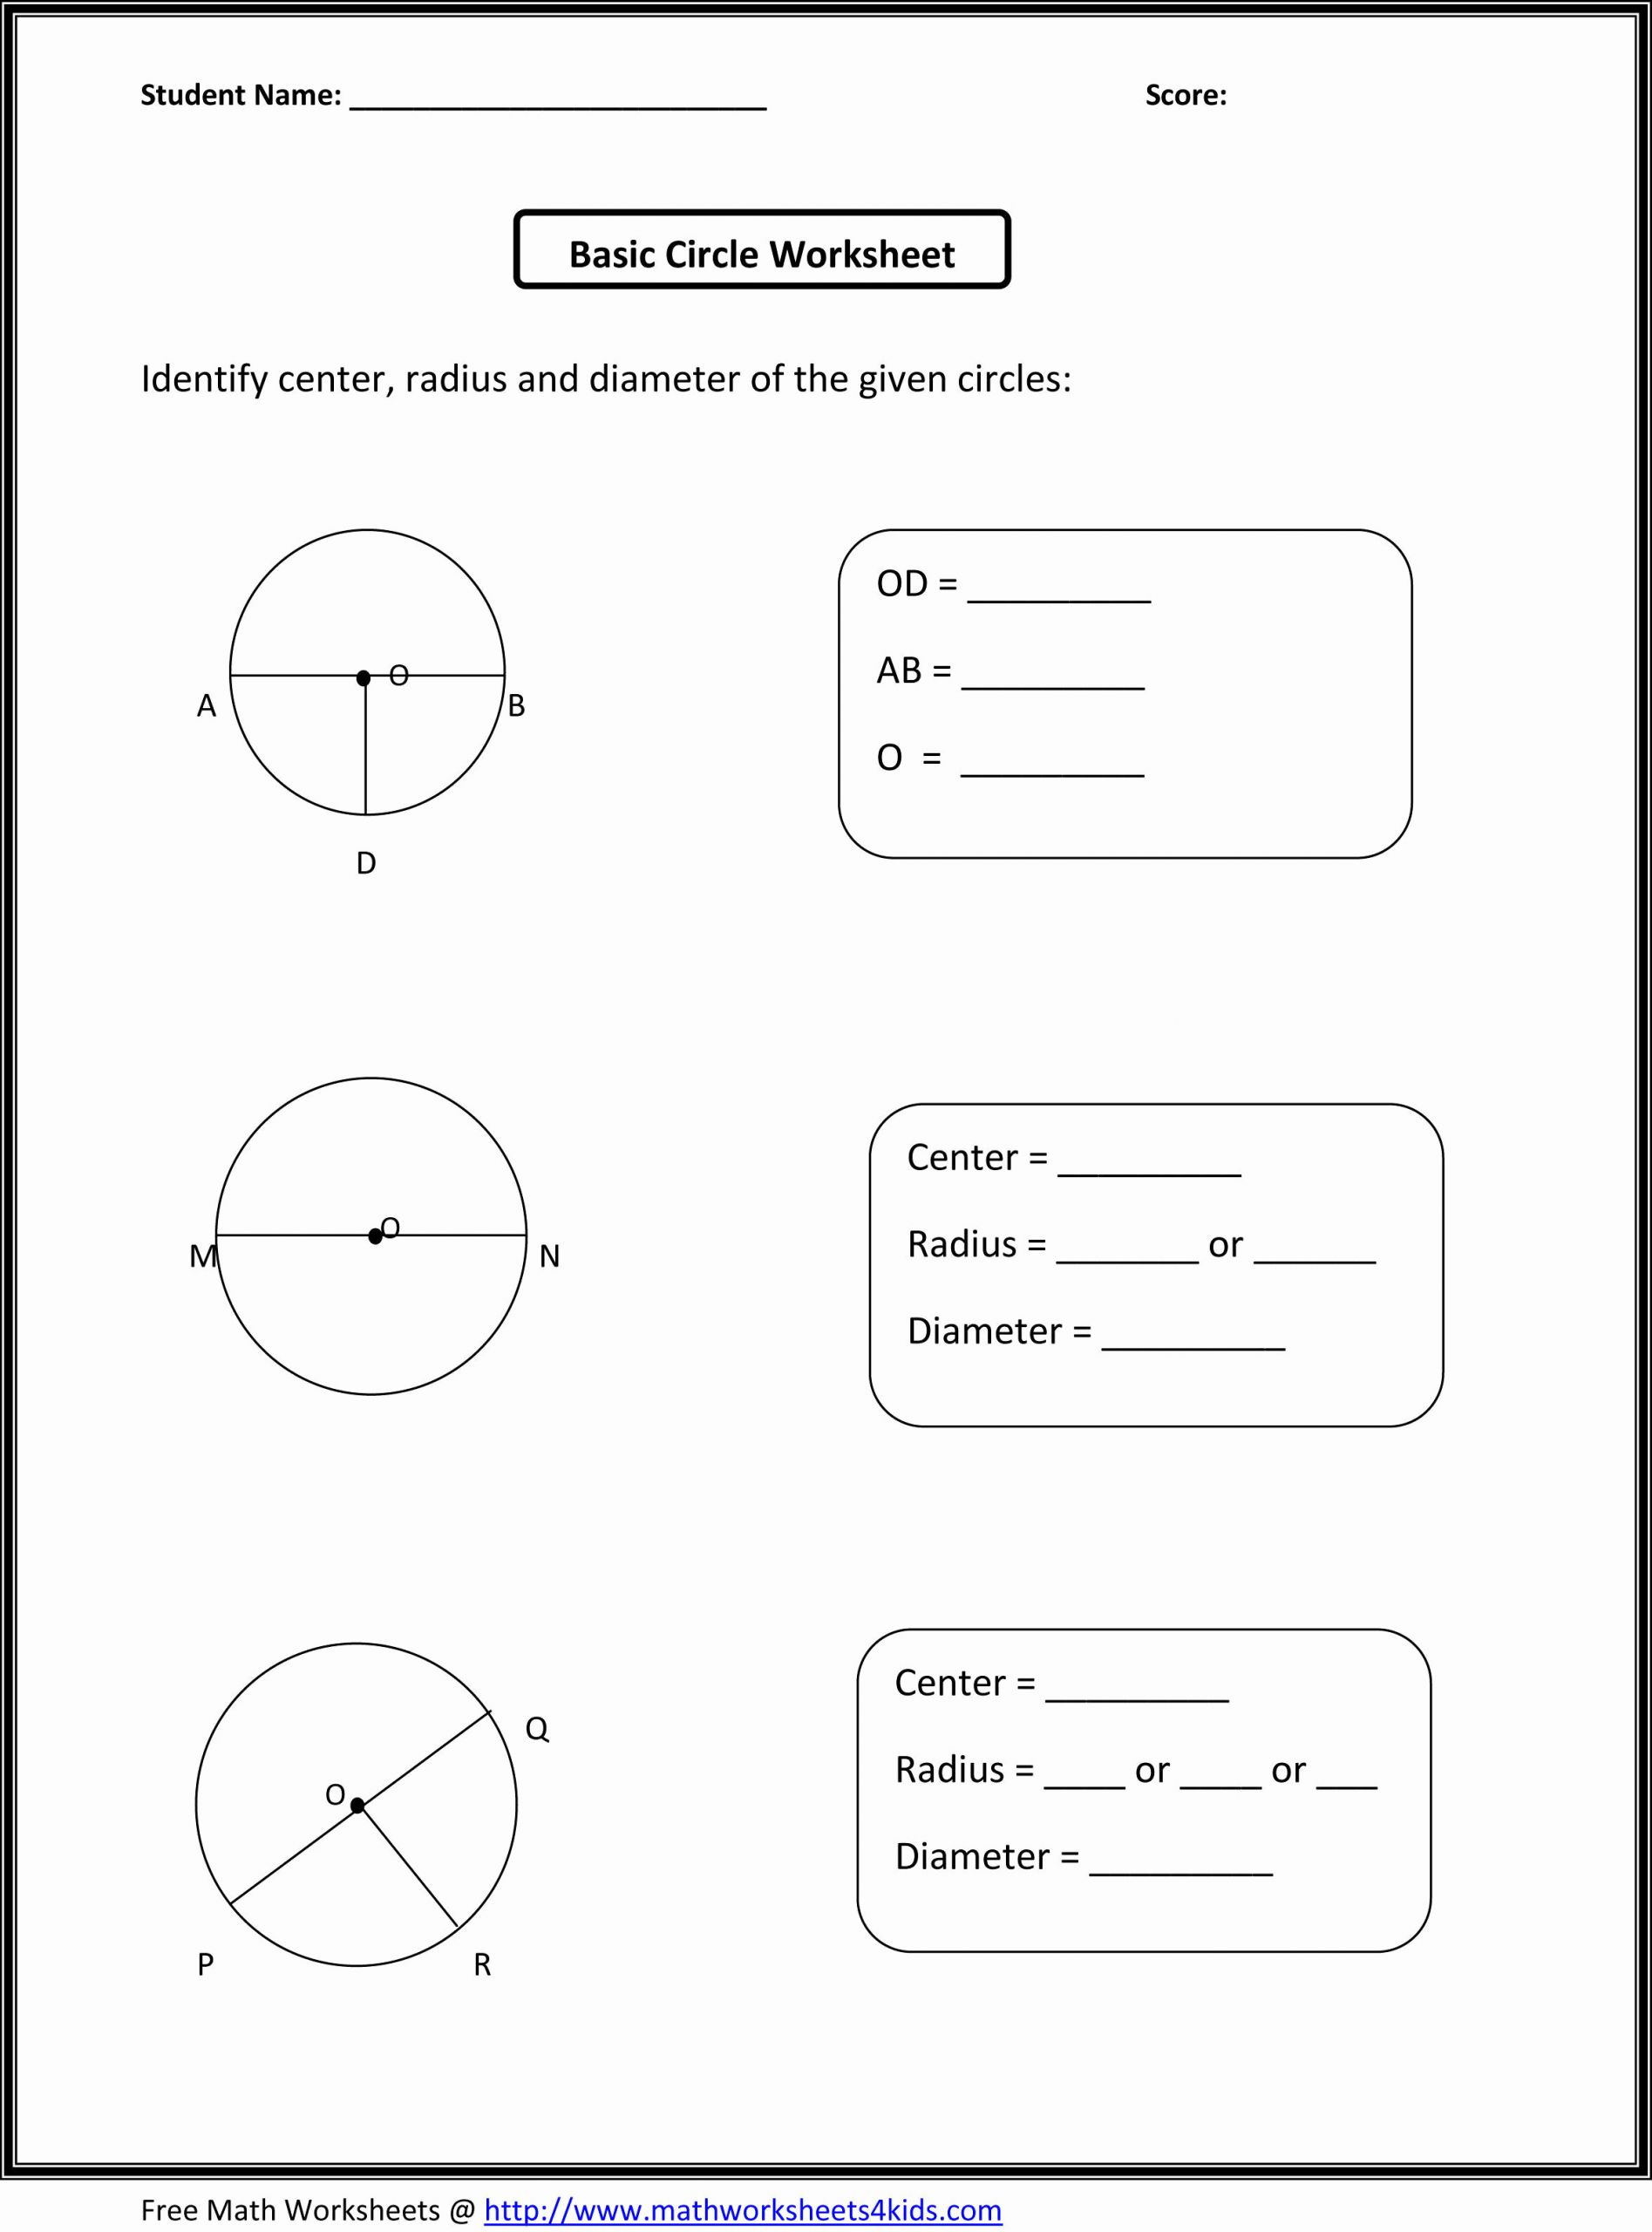 hight resolution of 5 Free Math Worksheets Third Grade 3 Measurement Metric Units Mass Kg Gm -  apocalomegaproductions.com